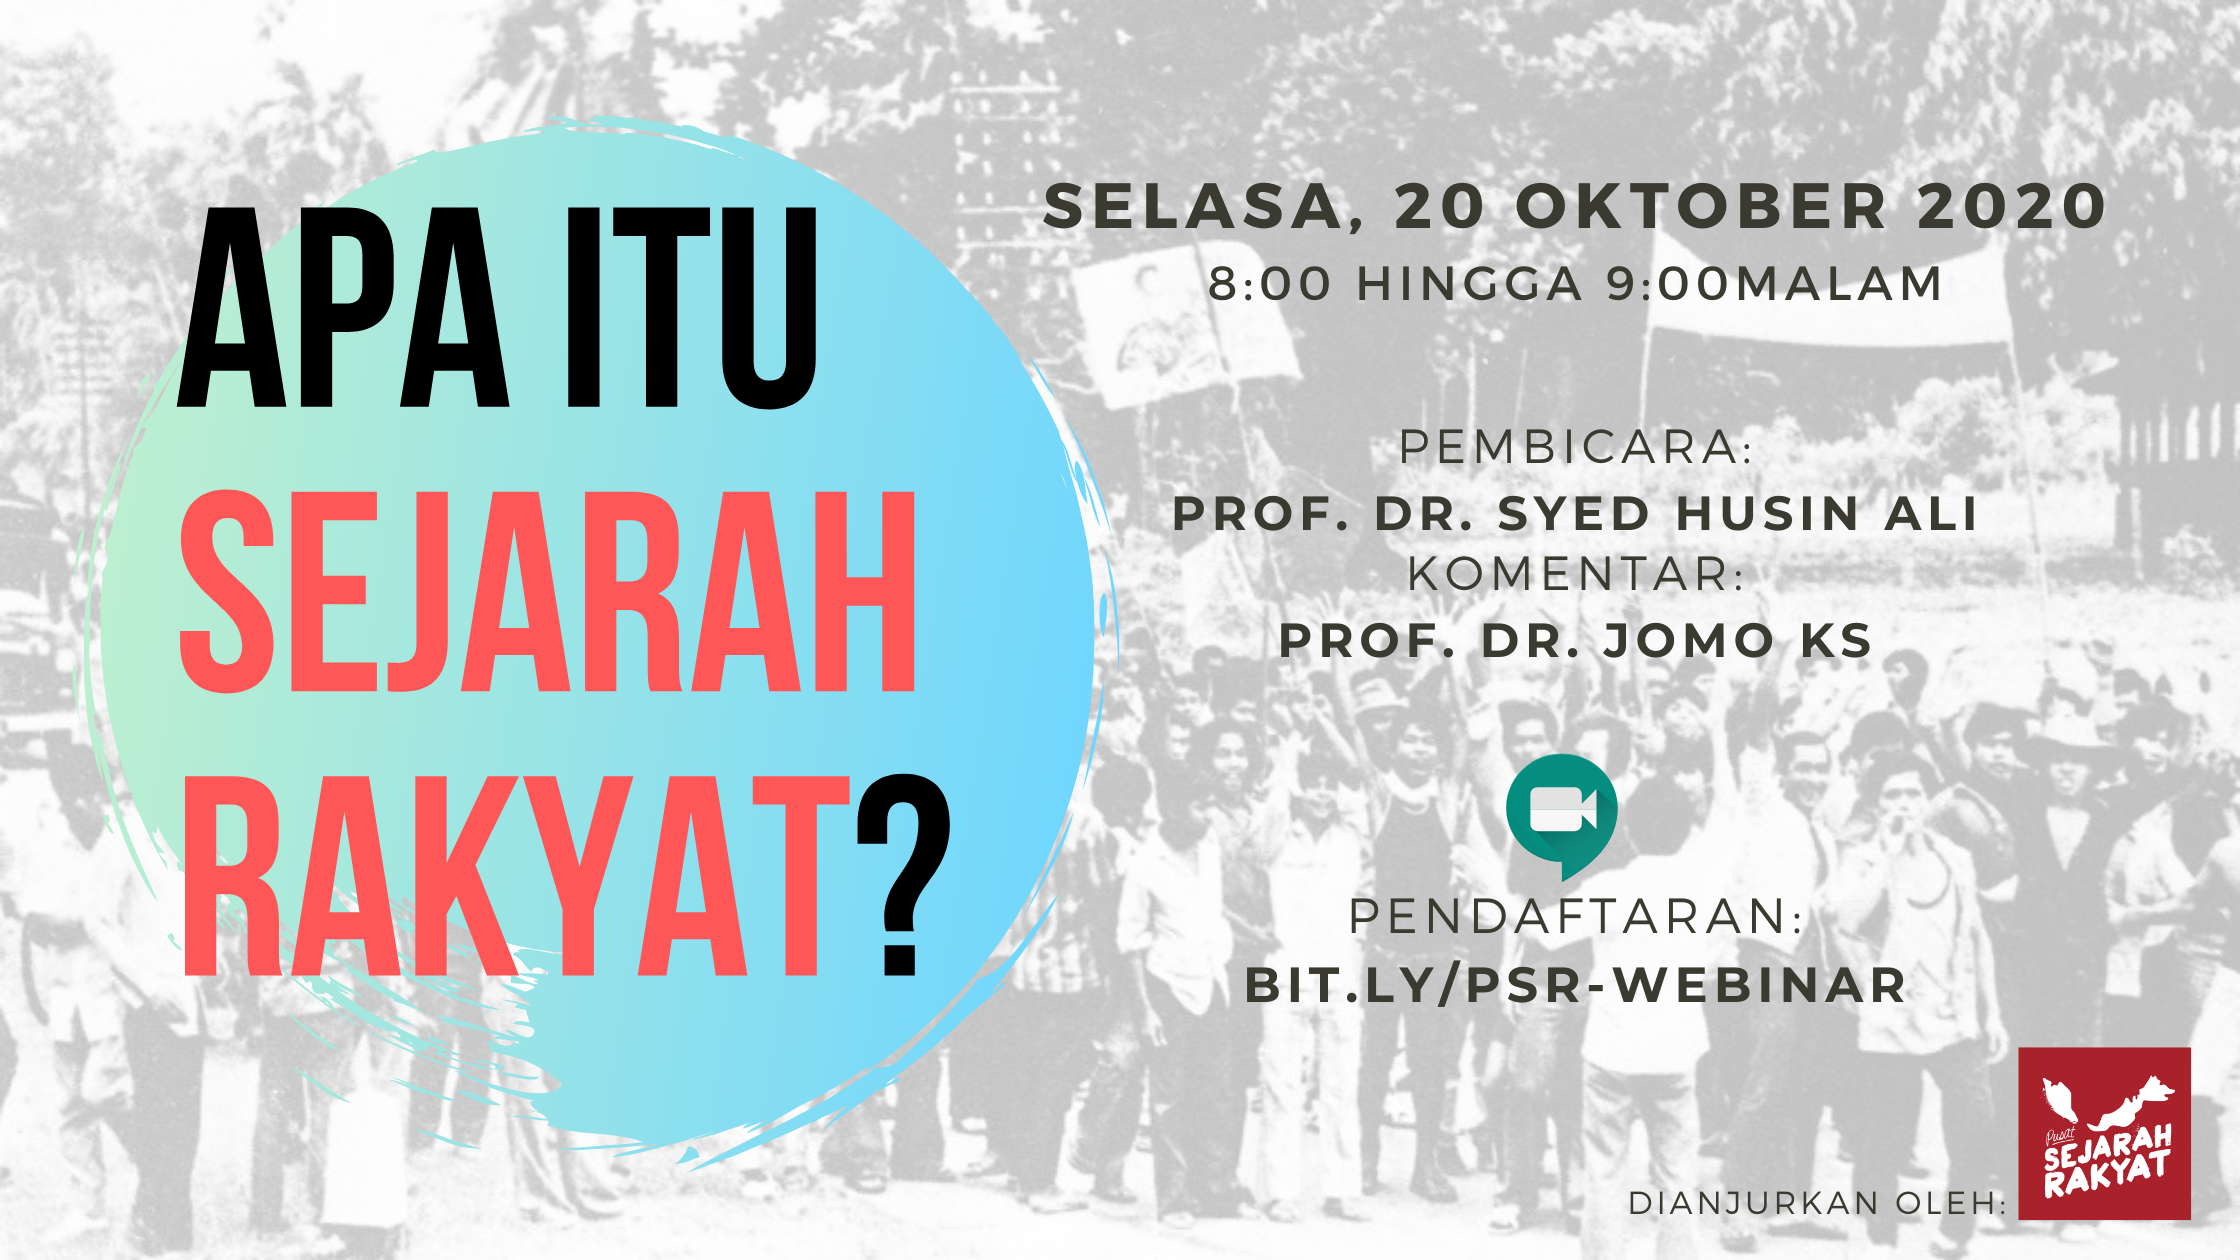 Photo of [Webinar] Apa itu Sejarah Rakyat? Dr. Syed Husin Ali (video)